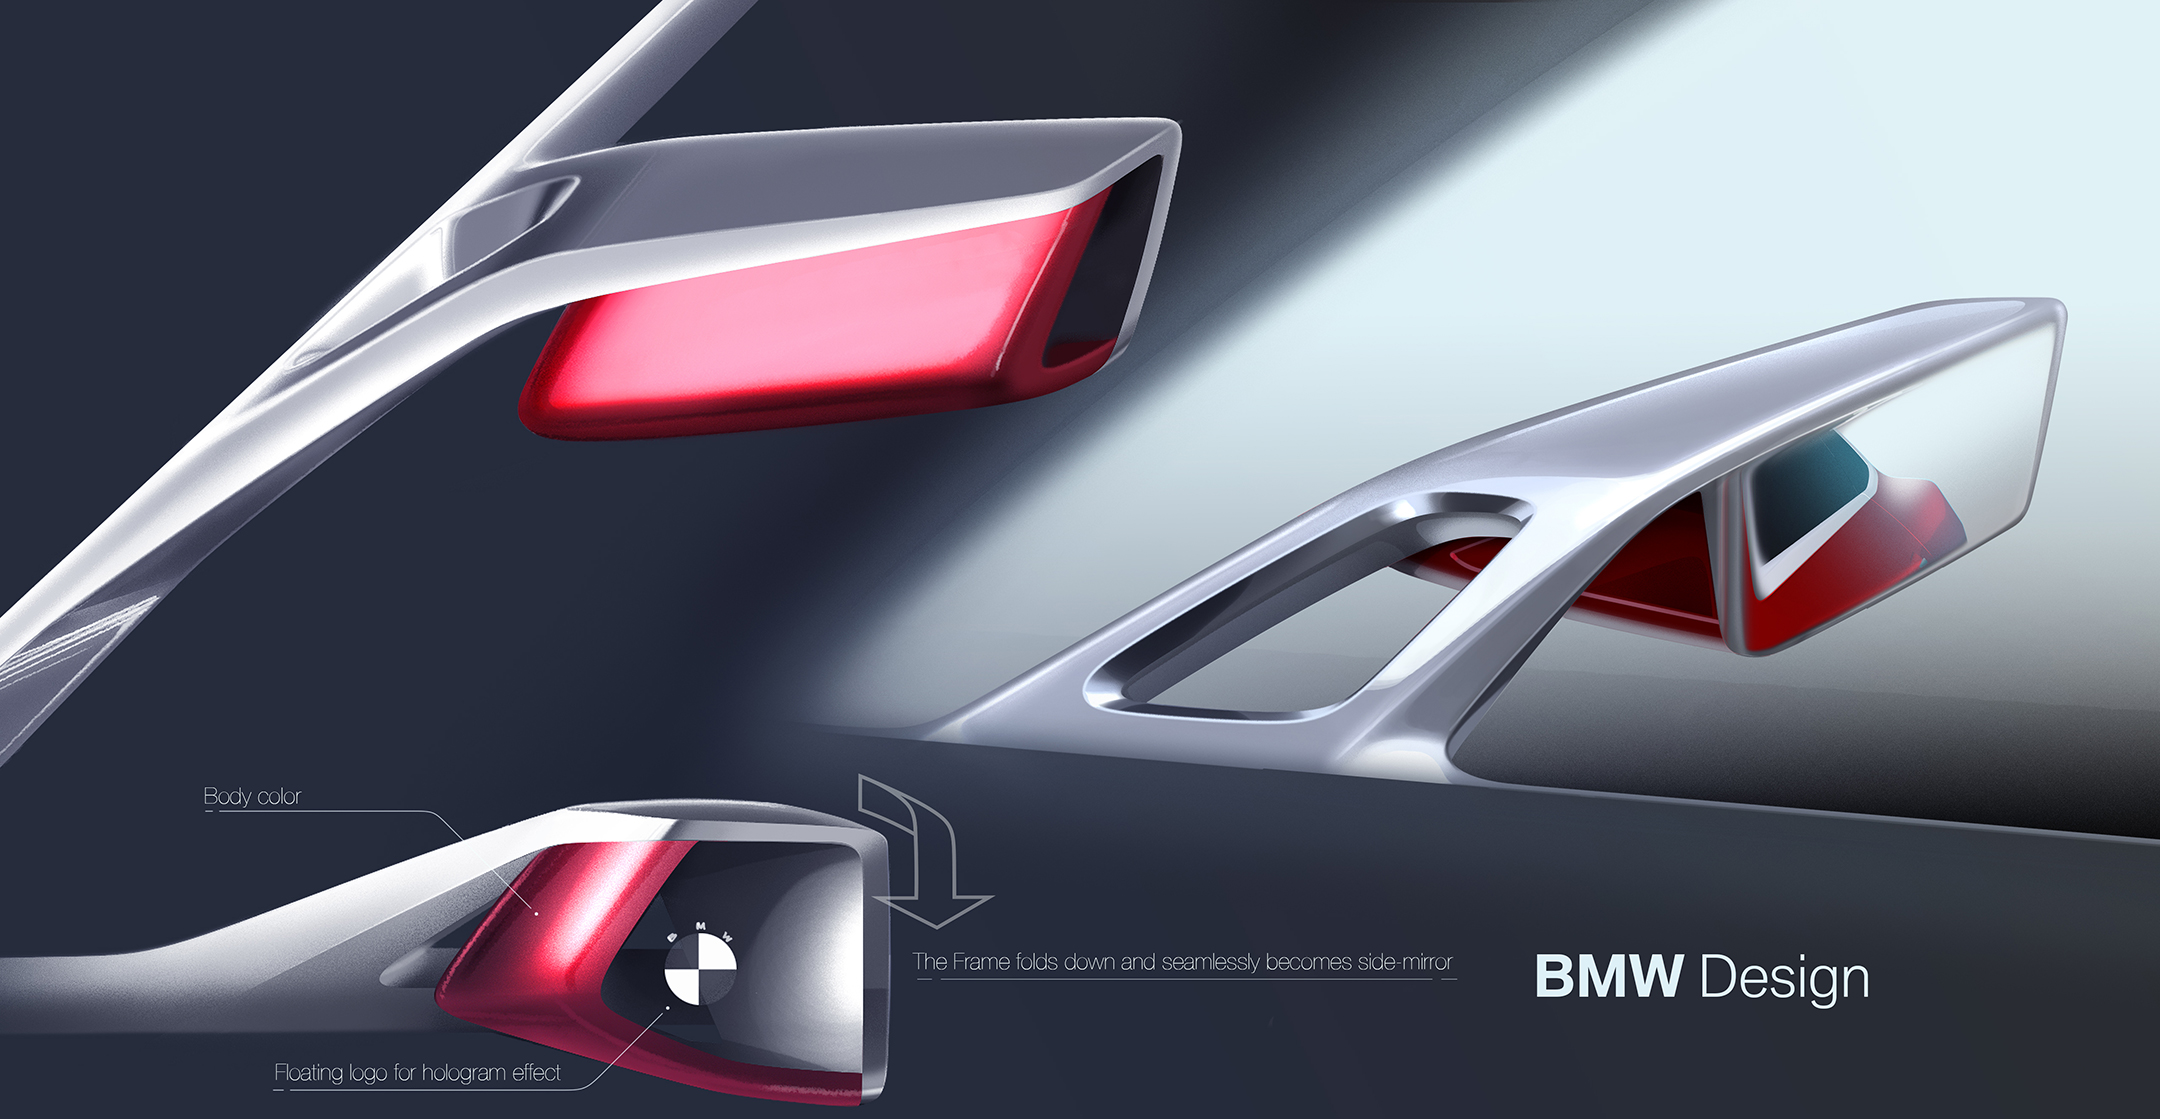 BMW Concept 4 - 2019 - sketch design - mirror wing / rétroviseur